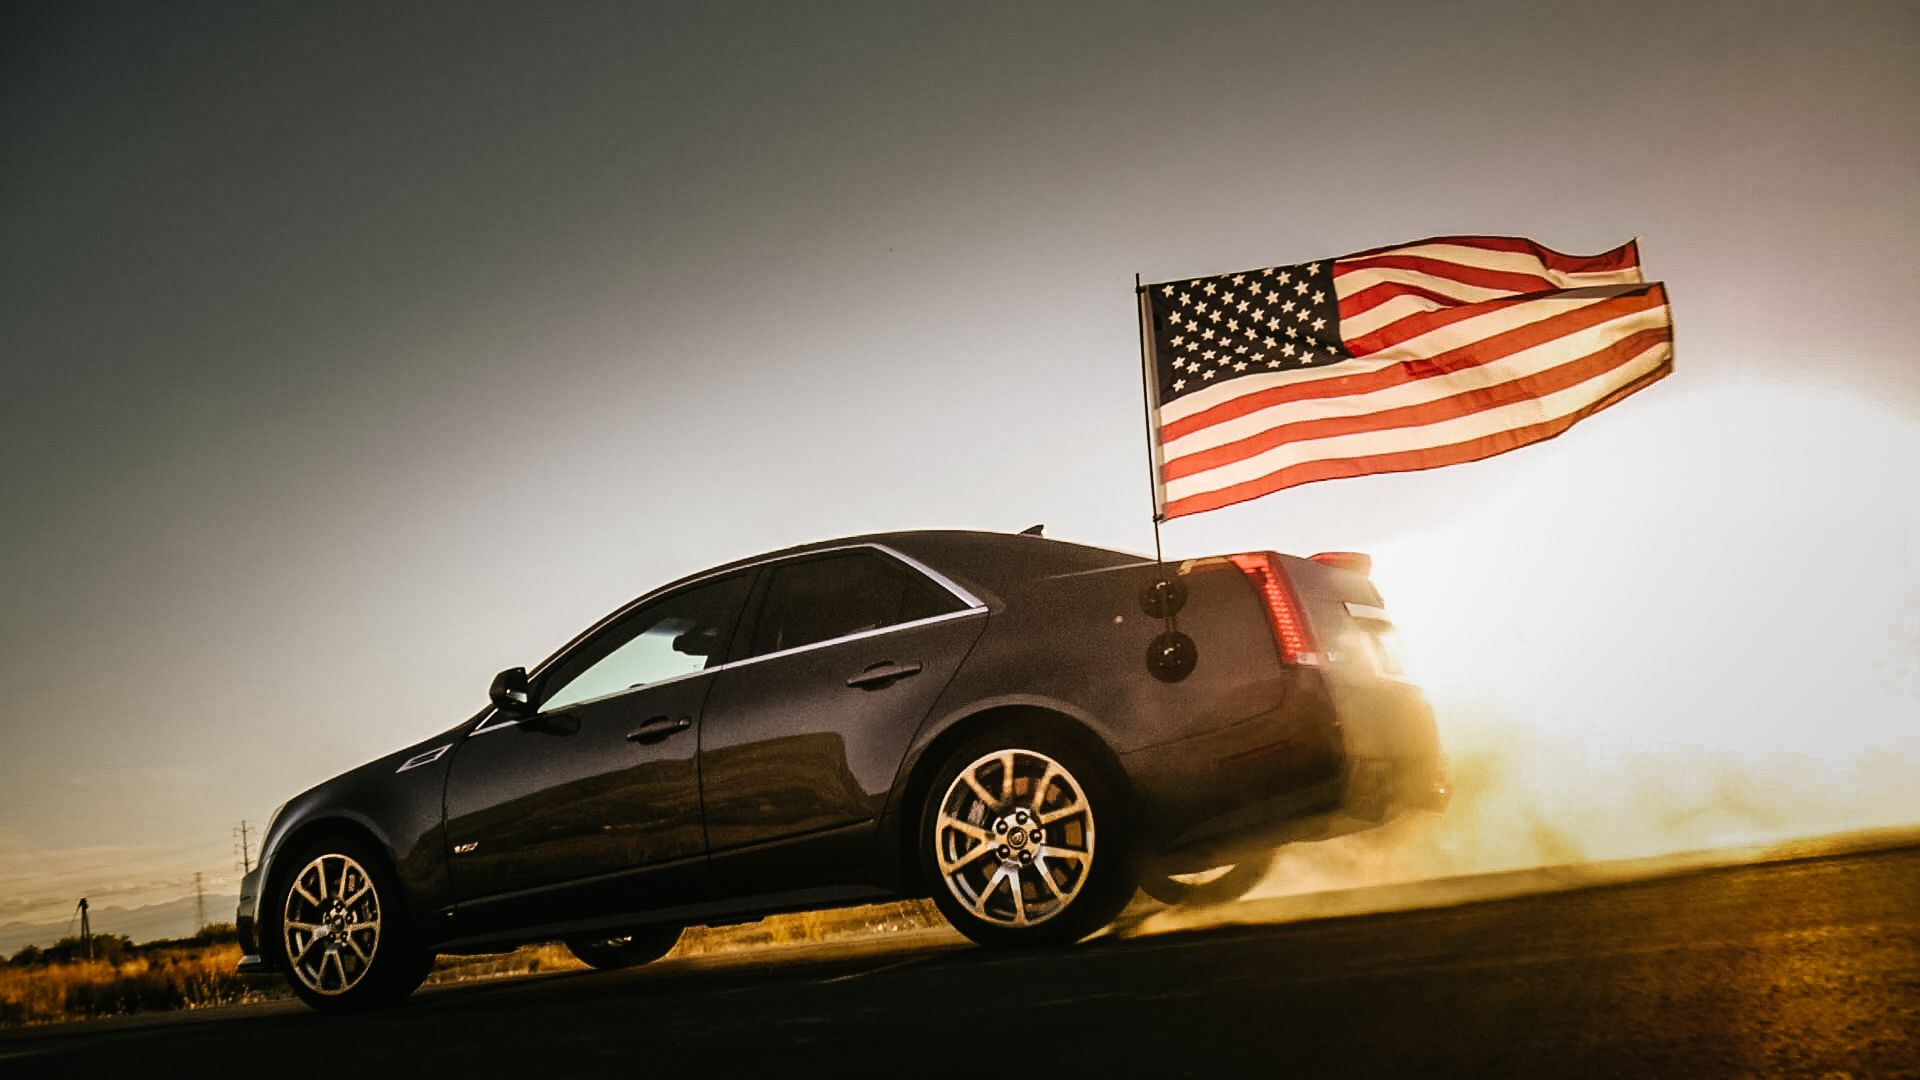 Pin On Cool Rides With Flags